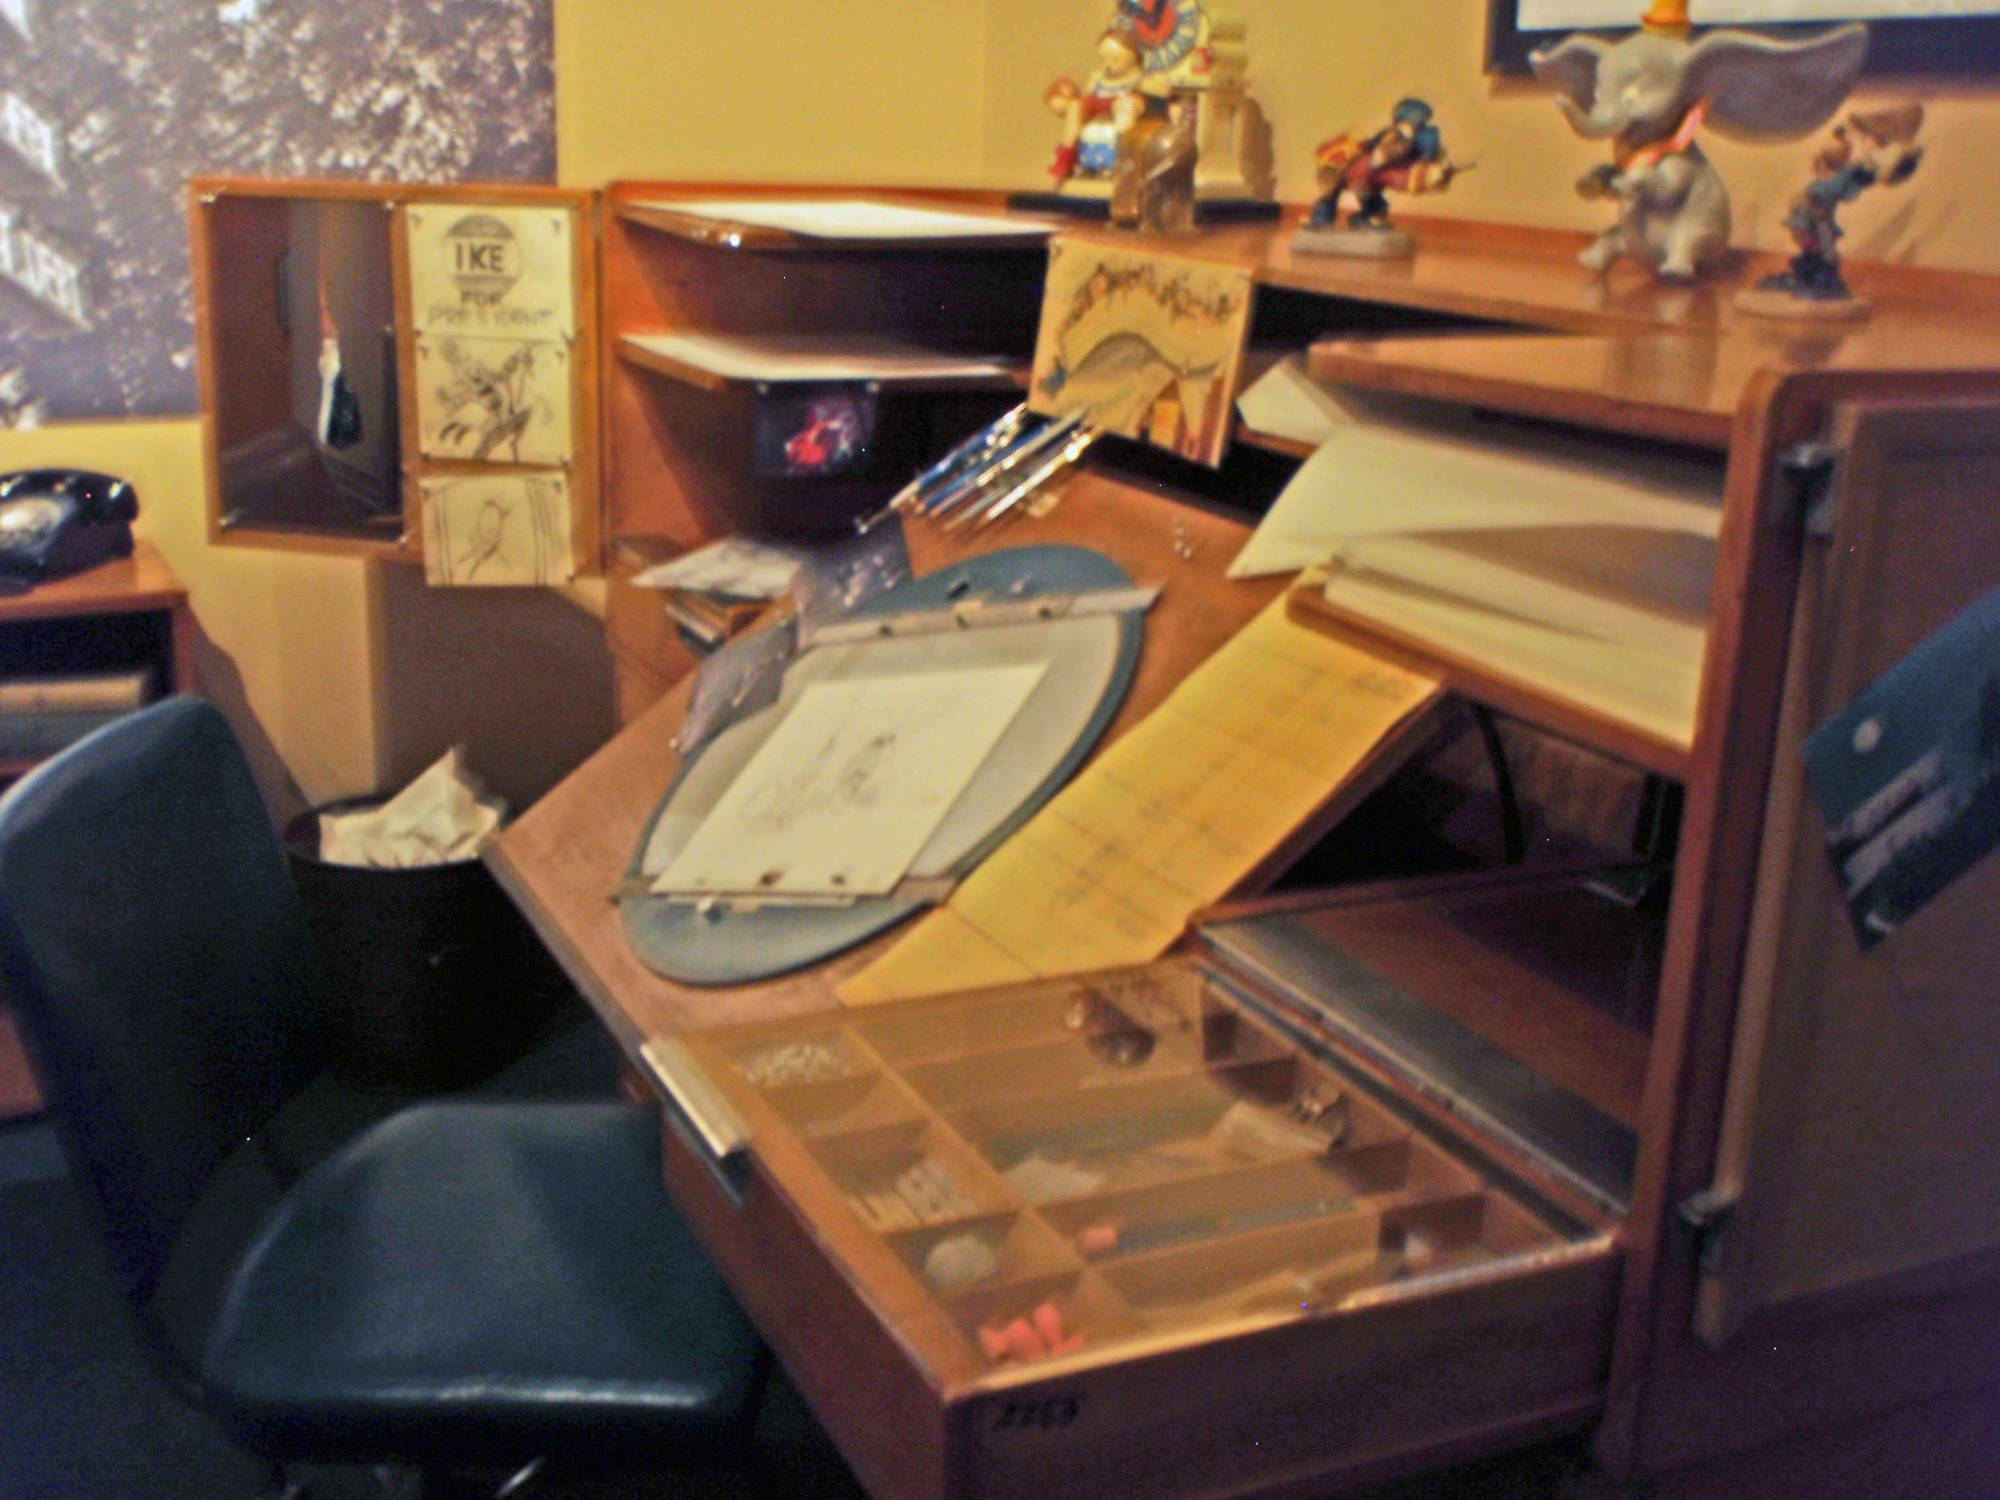 Gerri 1959 Walts drawing desk @ the Treasures of Walt Disney photo